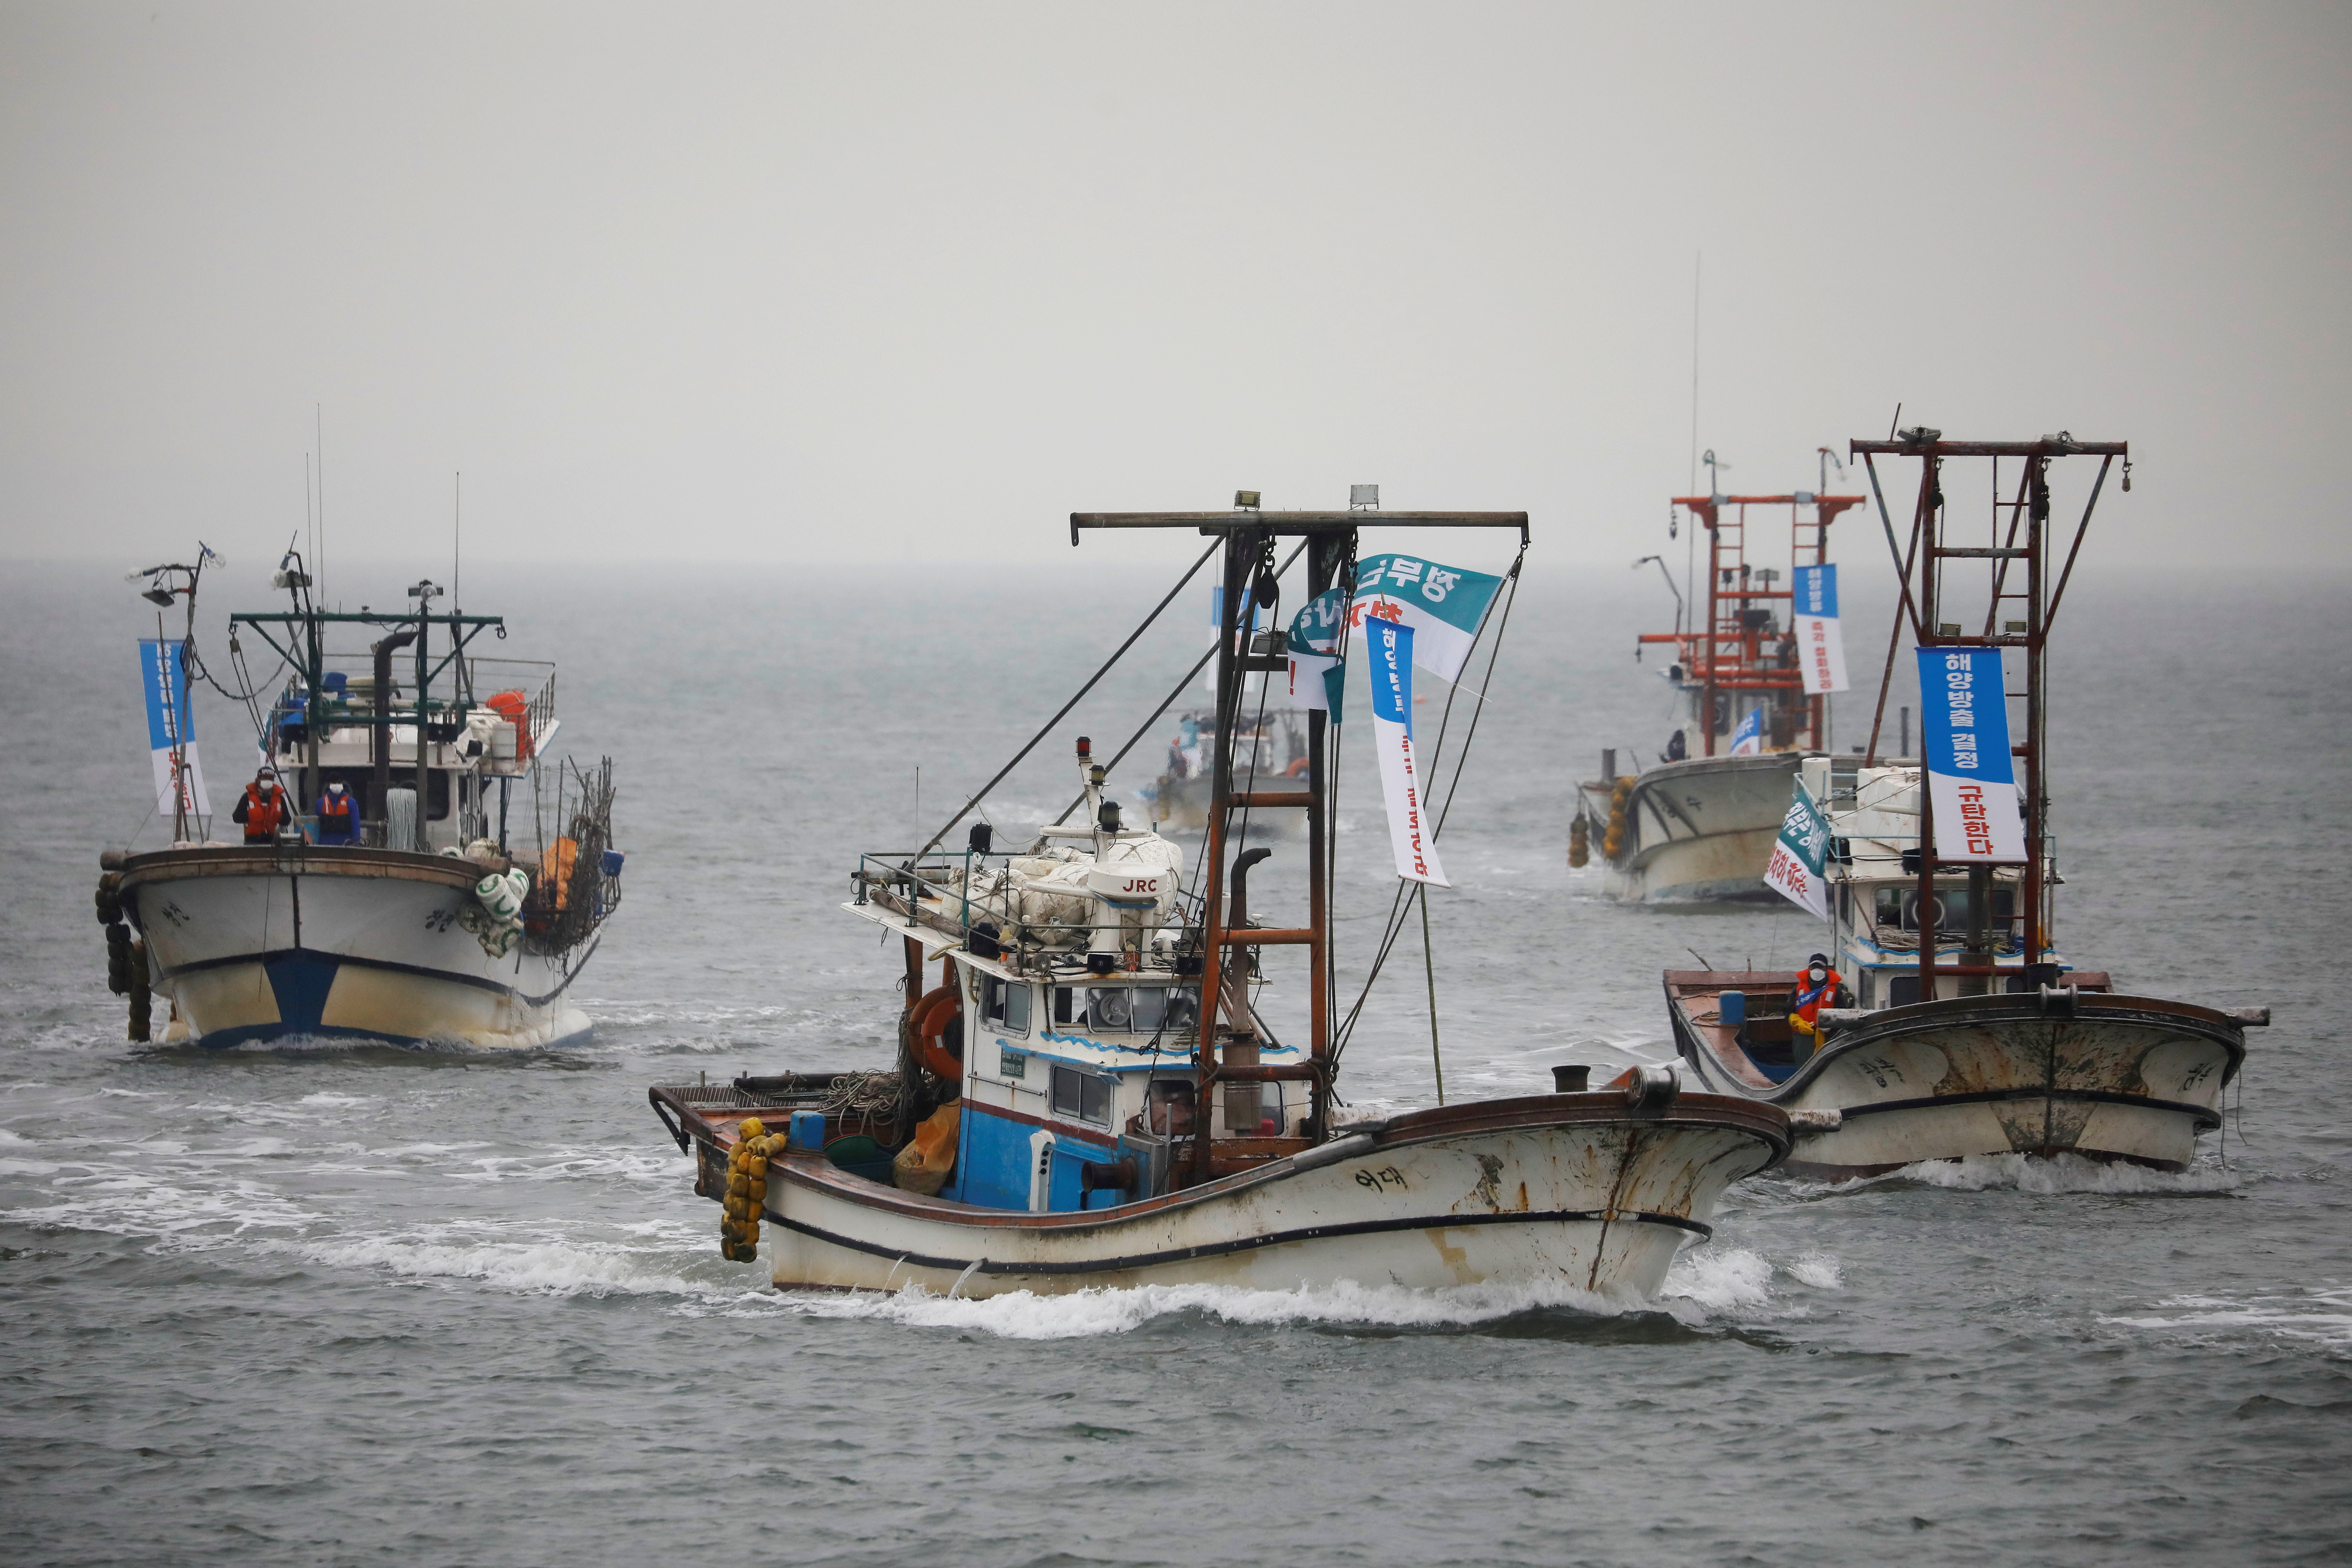 South Korean fishing boats take part in a marine protest, part of nationwide protests to demand Japan withdraw its decision to release contaminated water from its crippled Fukushima nuclear plant into the sea, at the sea off Incheon, South Korea, April 30, 2021.  REUTERS/Kim Hong-Ji/File Photo